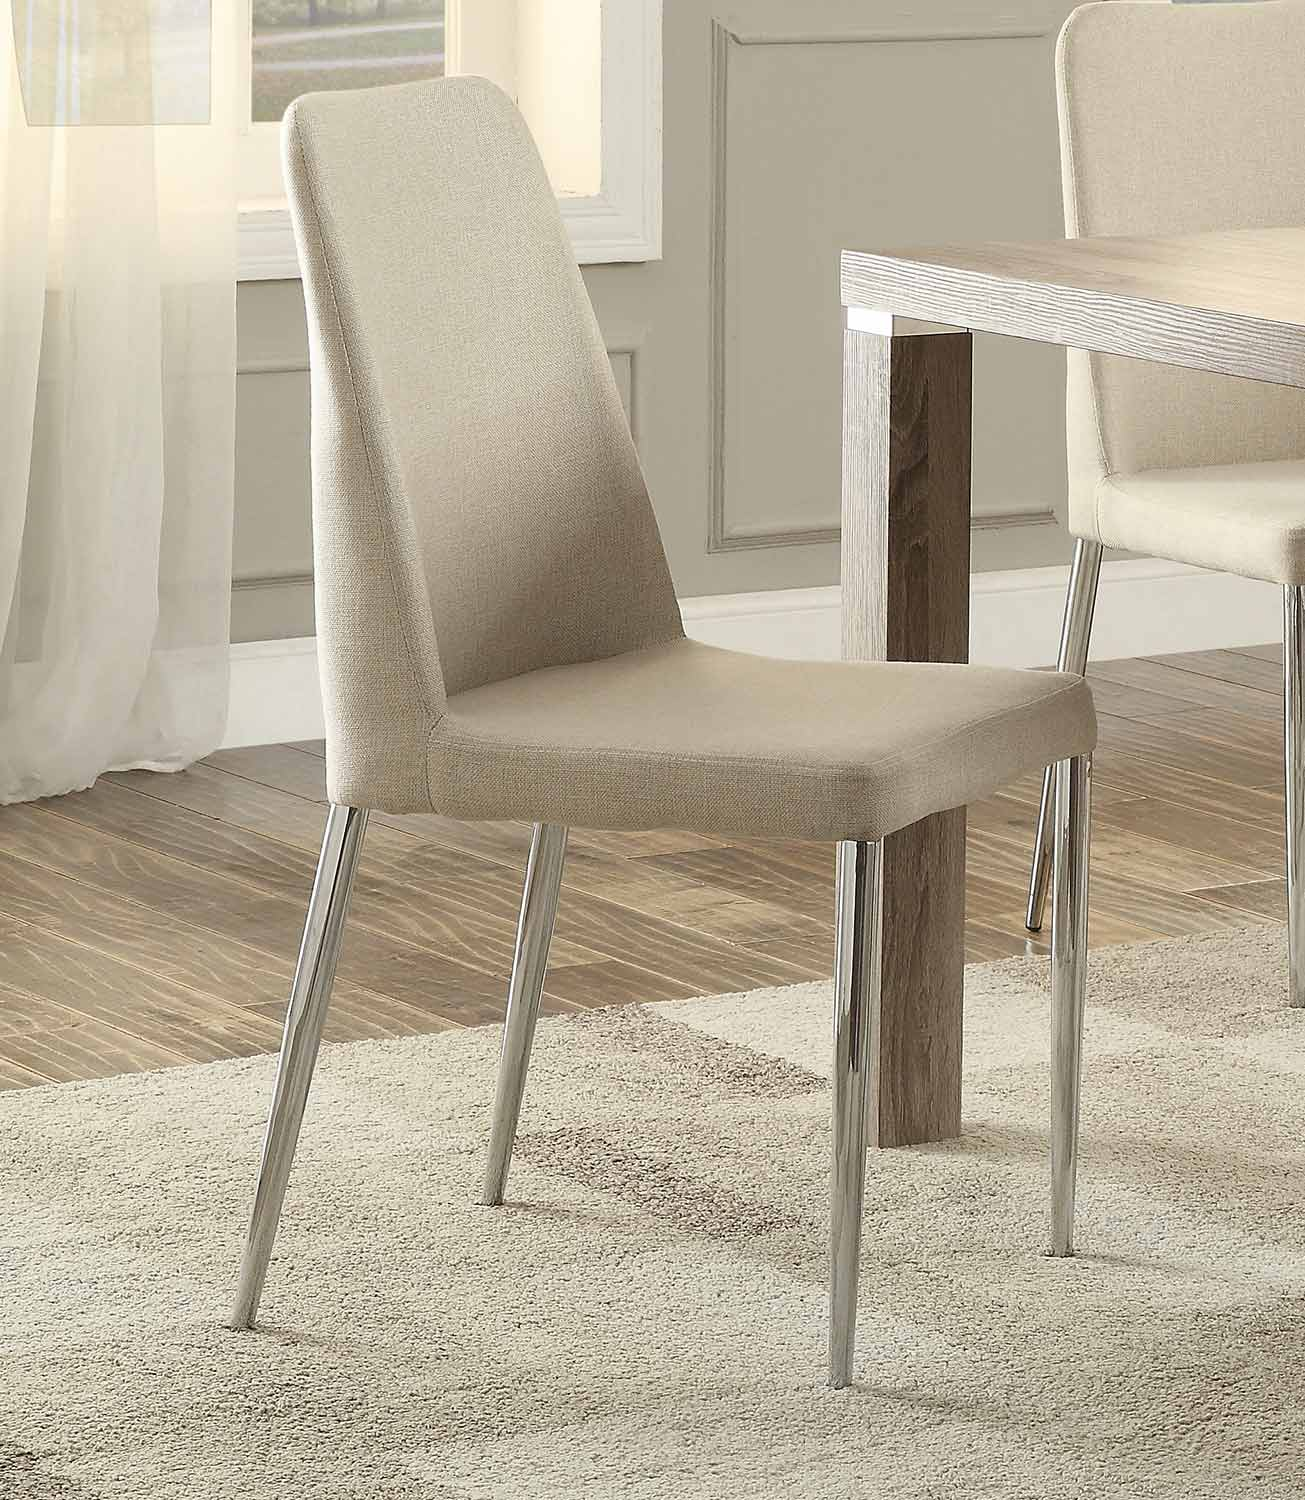 Homelegance Luzerne Side Chair - Neutral Tone Fabric